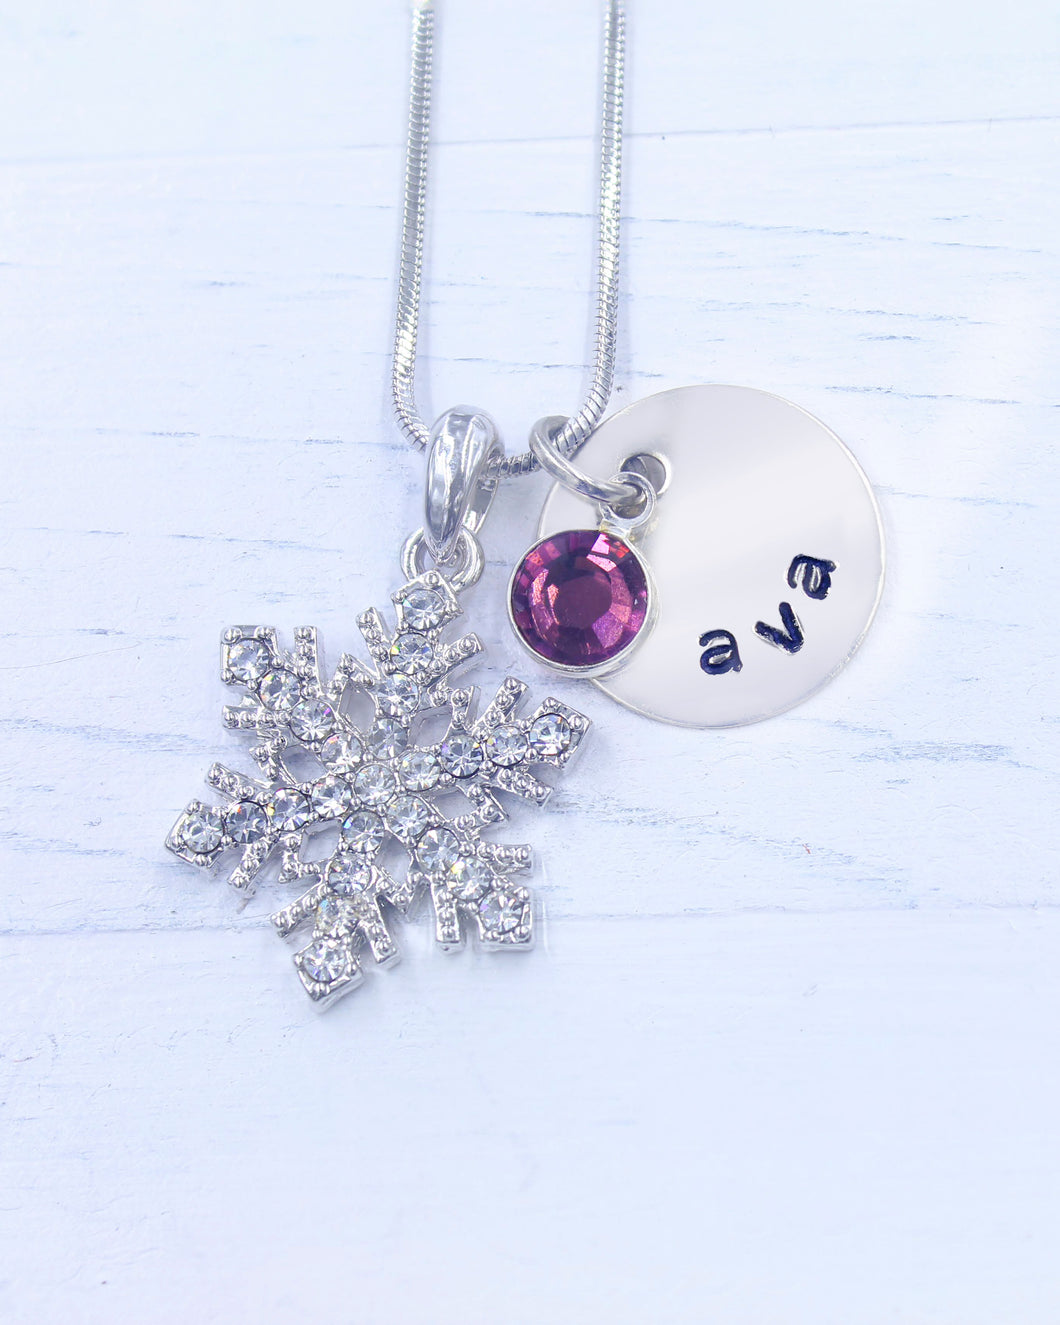 Snowflake Necklace | Charm Jewelry | Personalized  Necklace | Snowflake Charm | Christmas gifts for mom | Christmas gifts for her